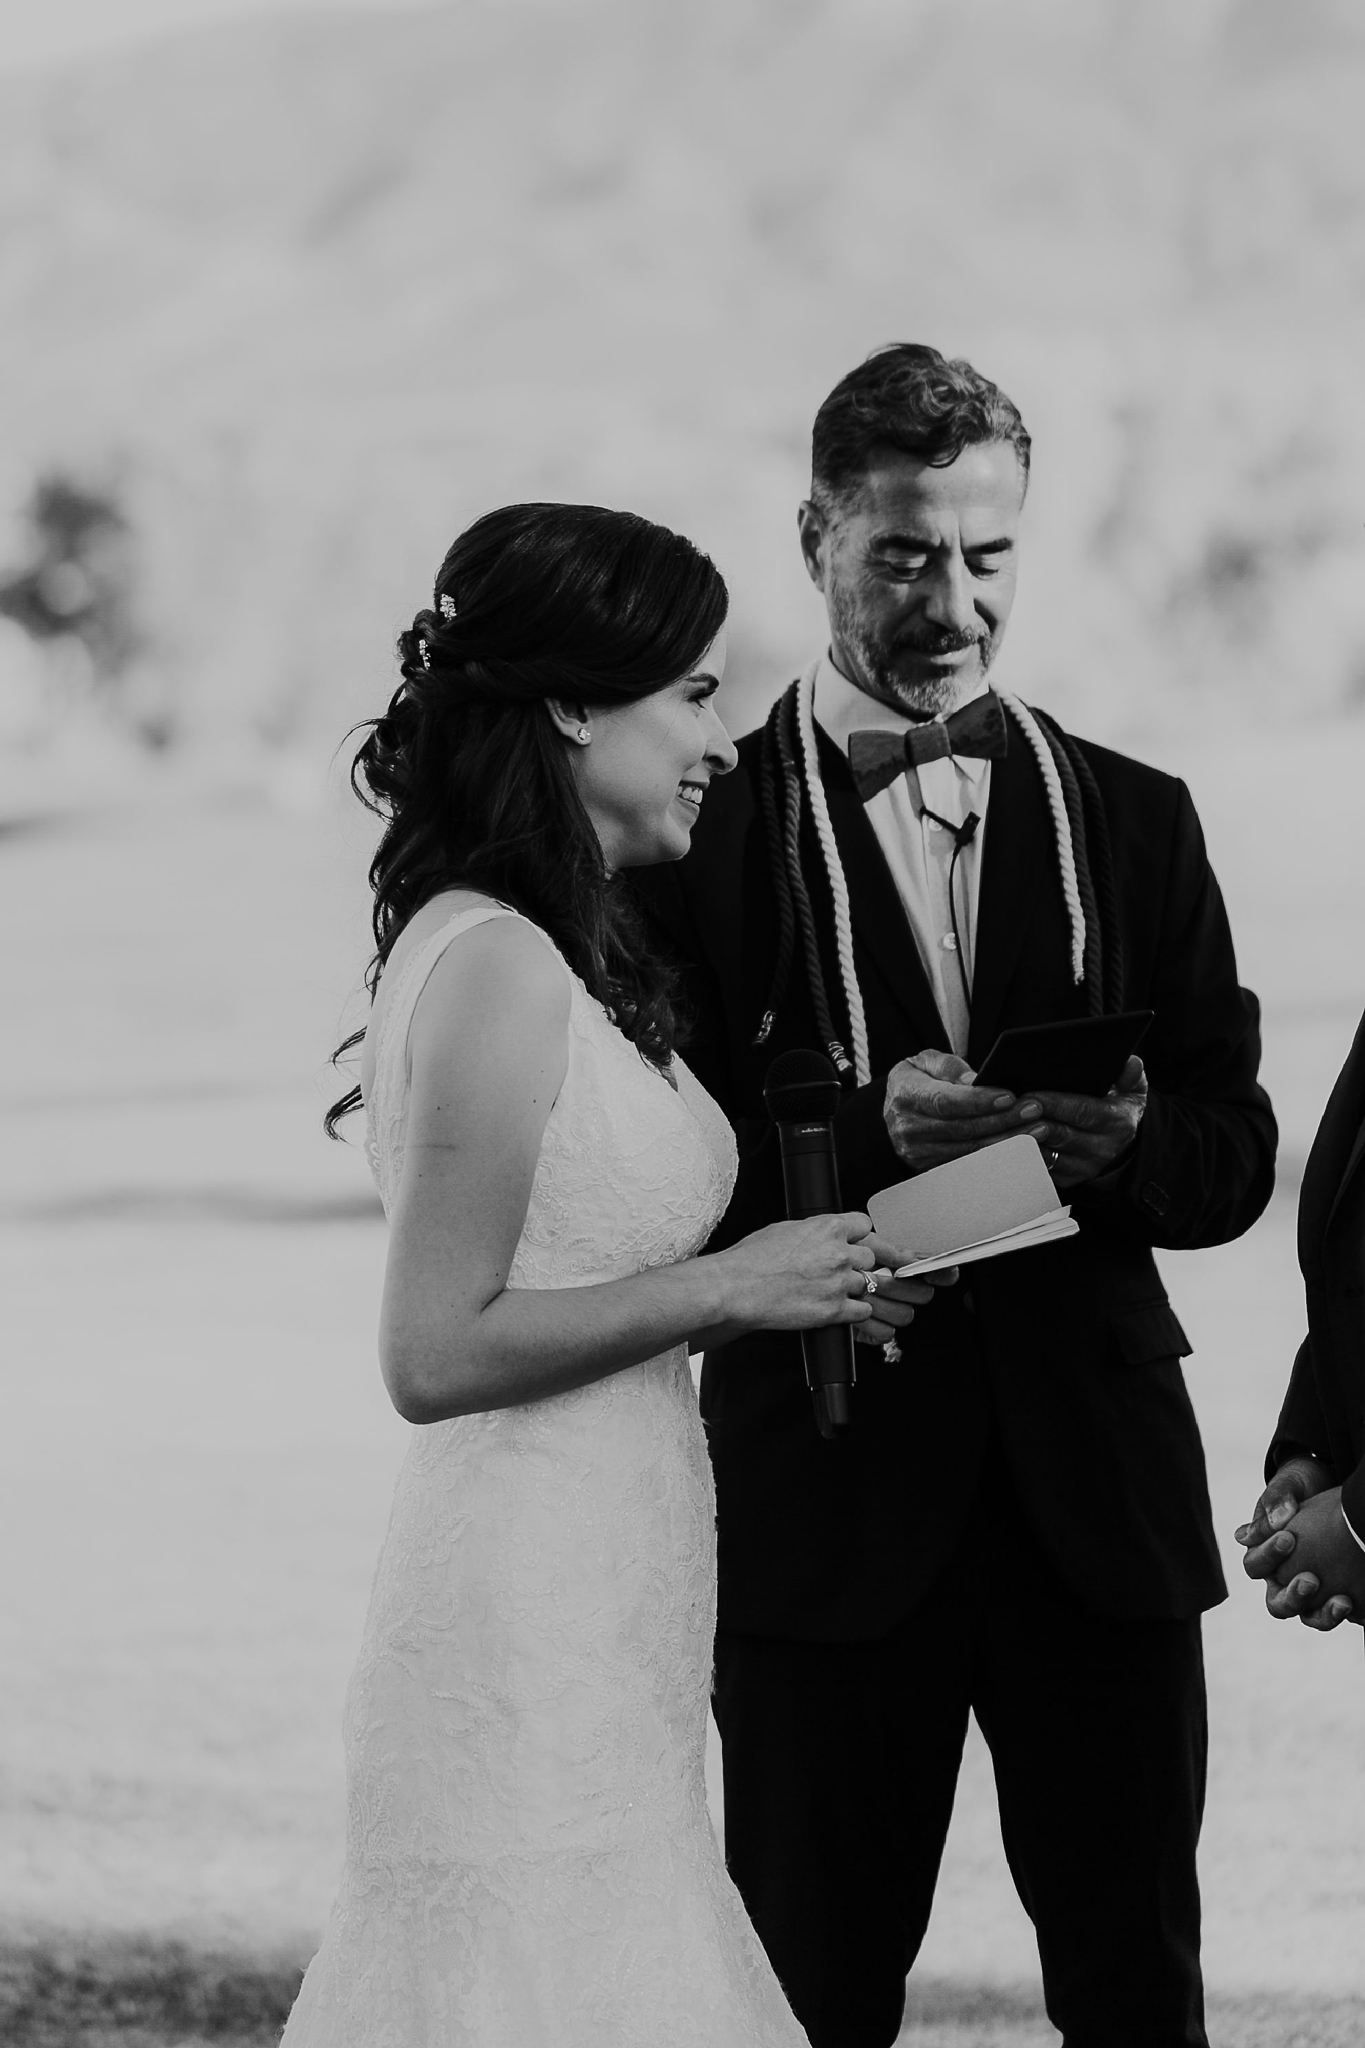 Alicia+lucia+photography+-+albuquerque+wedding+photographer+-+santa+fe+wedding+photography+-+new+mexico+wedding+photographer+-+new+mexico+wedding+-+wedding+vows+-+writing+your+own+vows+-+wedding+inspo_0007.jpg